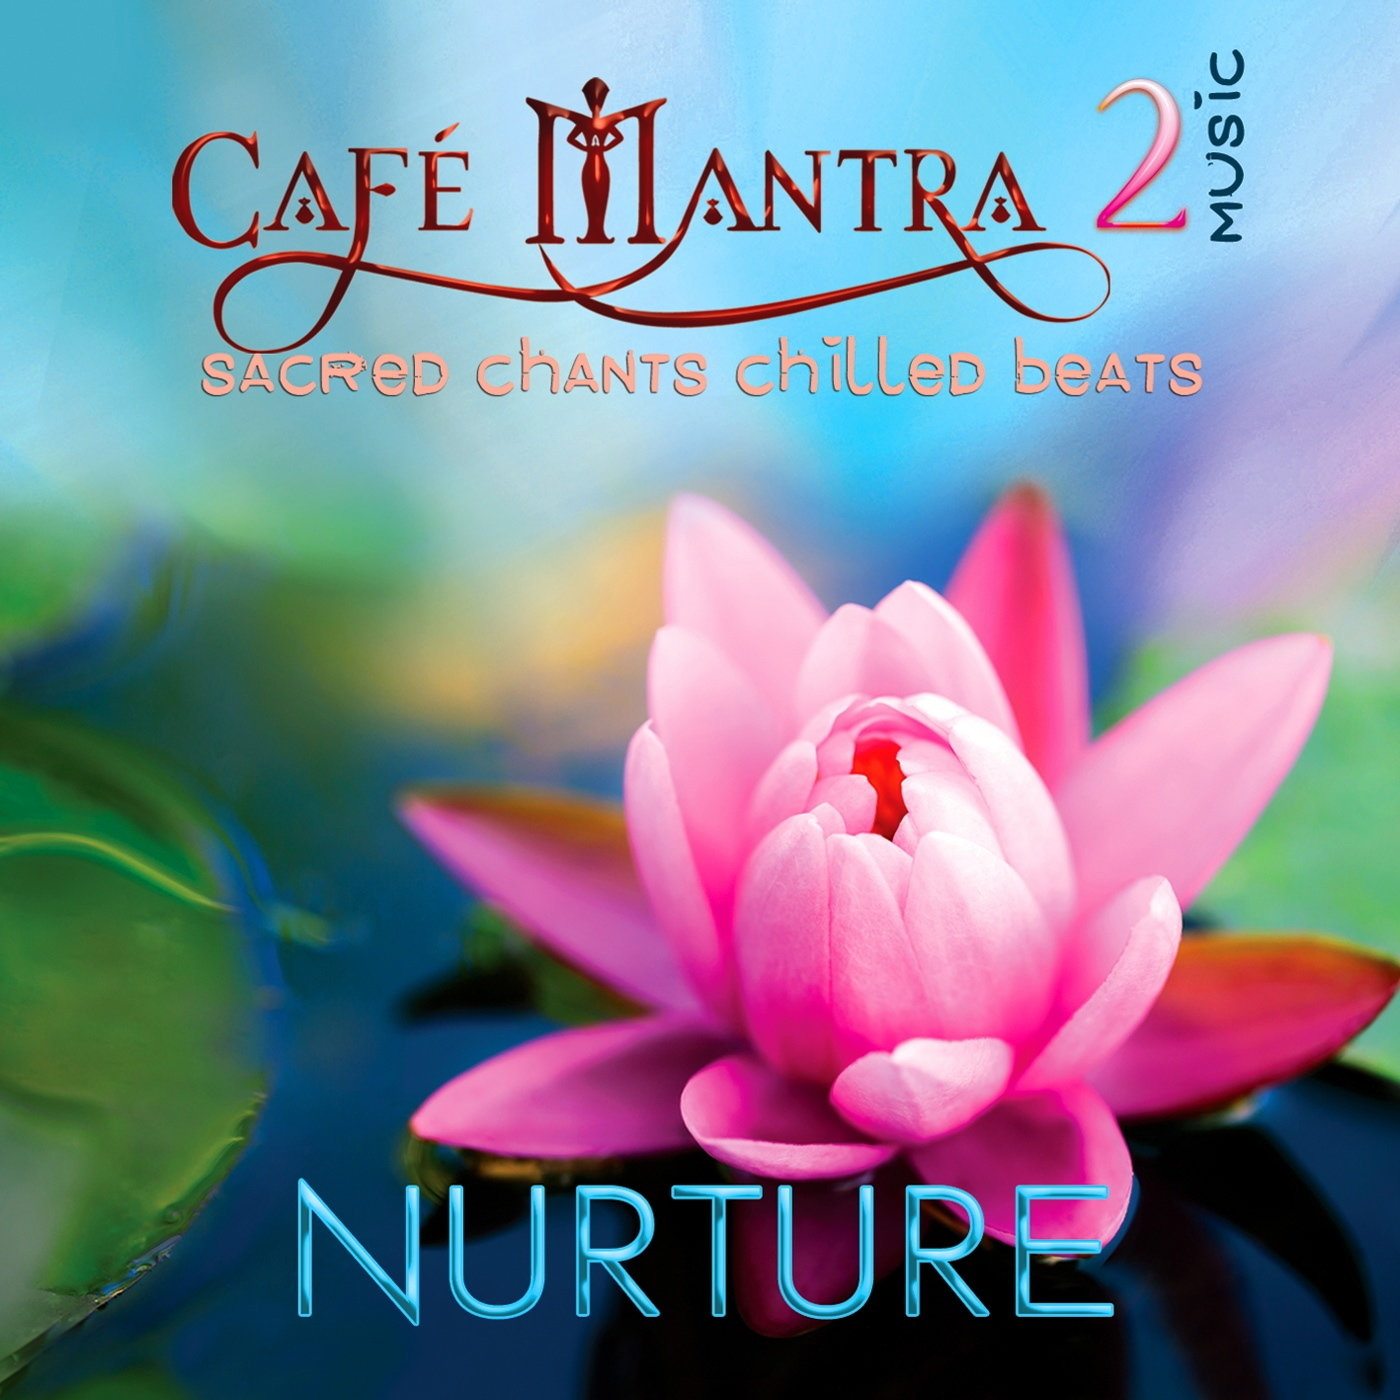 DOWNLOAD: Cafe Mantra Music2 NURTURE